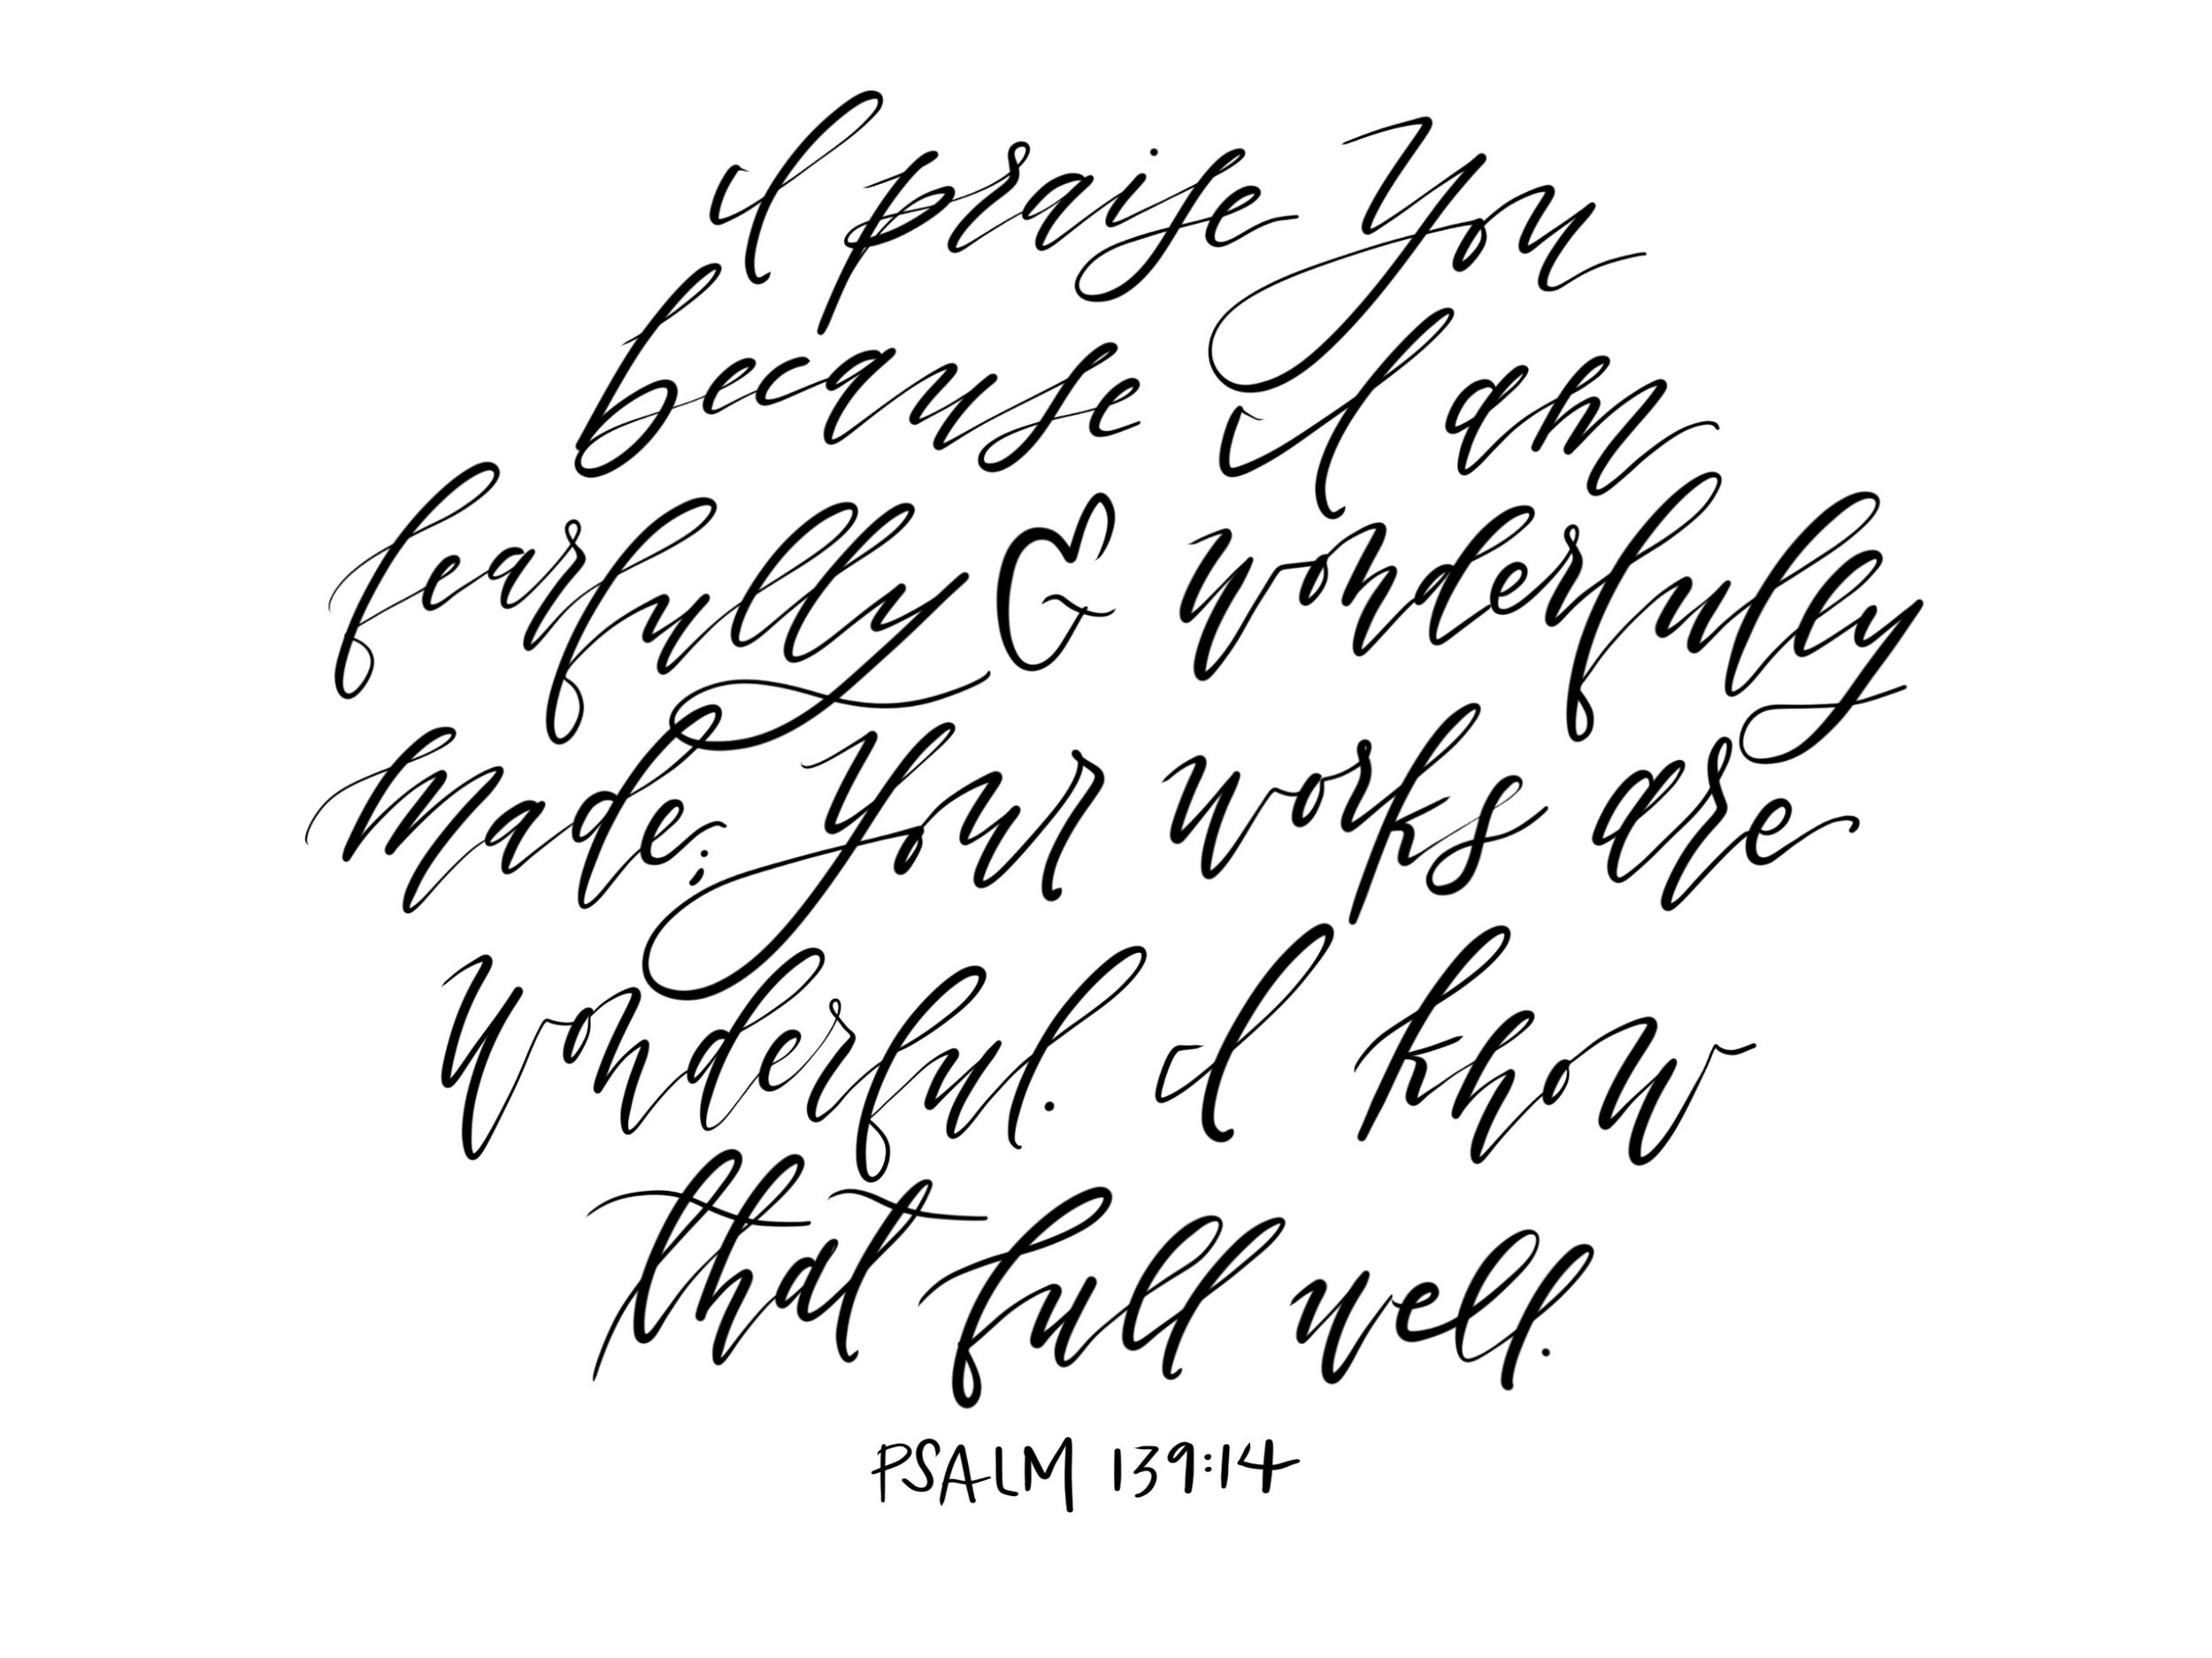 Connar Joy Calligraphy Psalm 139:14